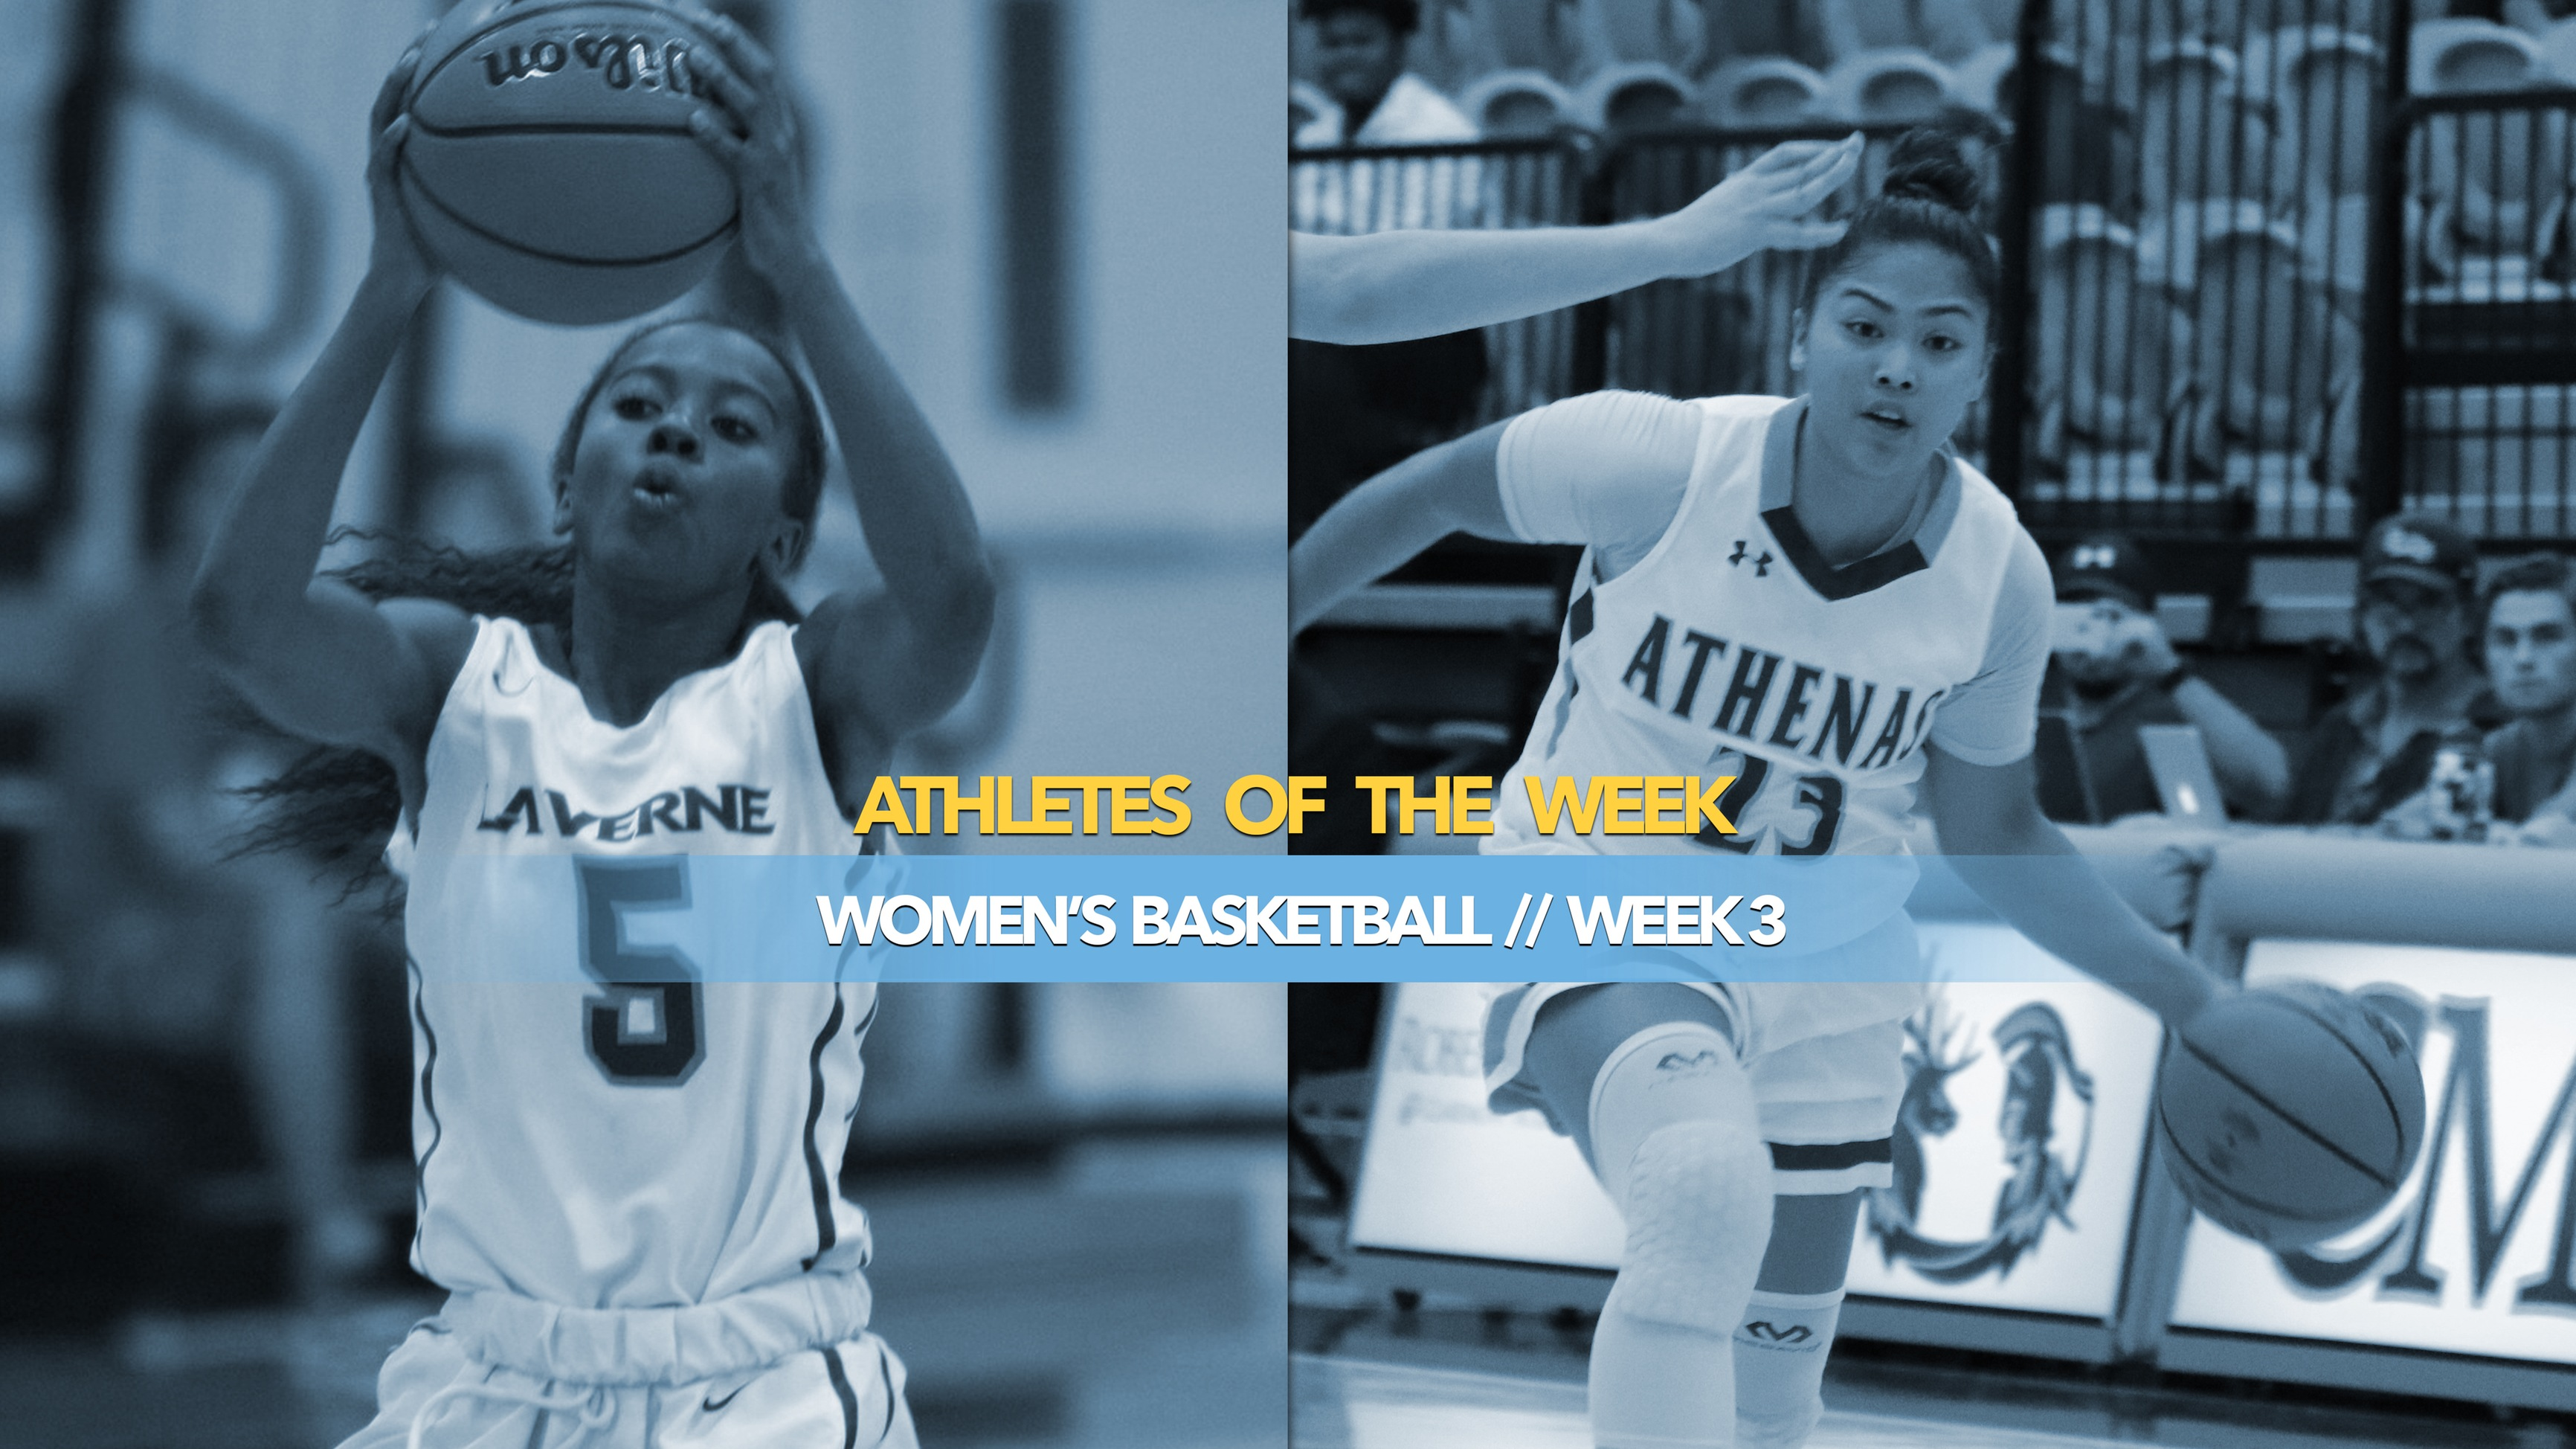 Women's Basketball Athletes of the Week: November 25, 2019